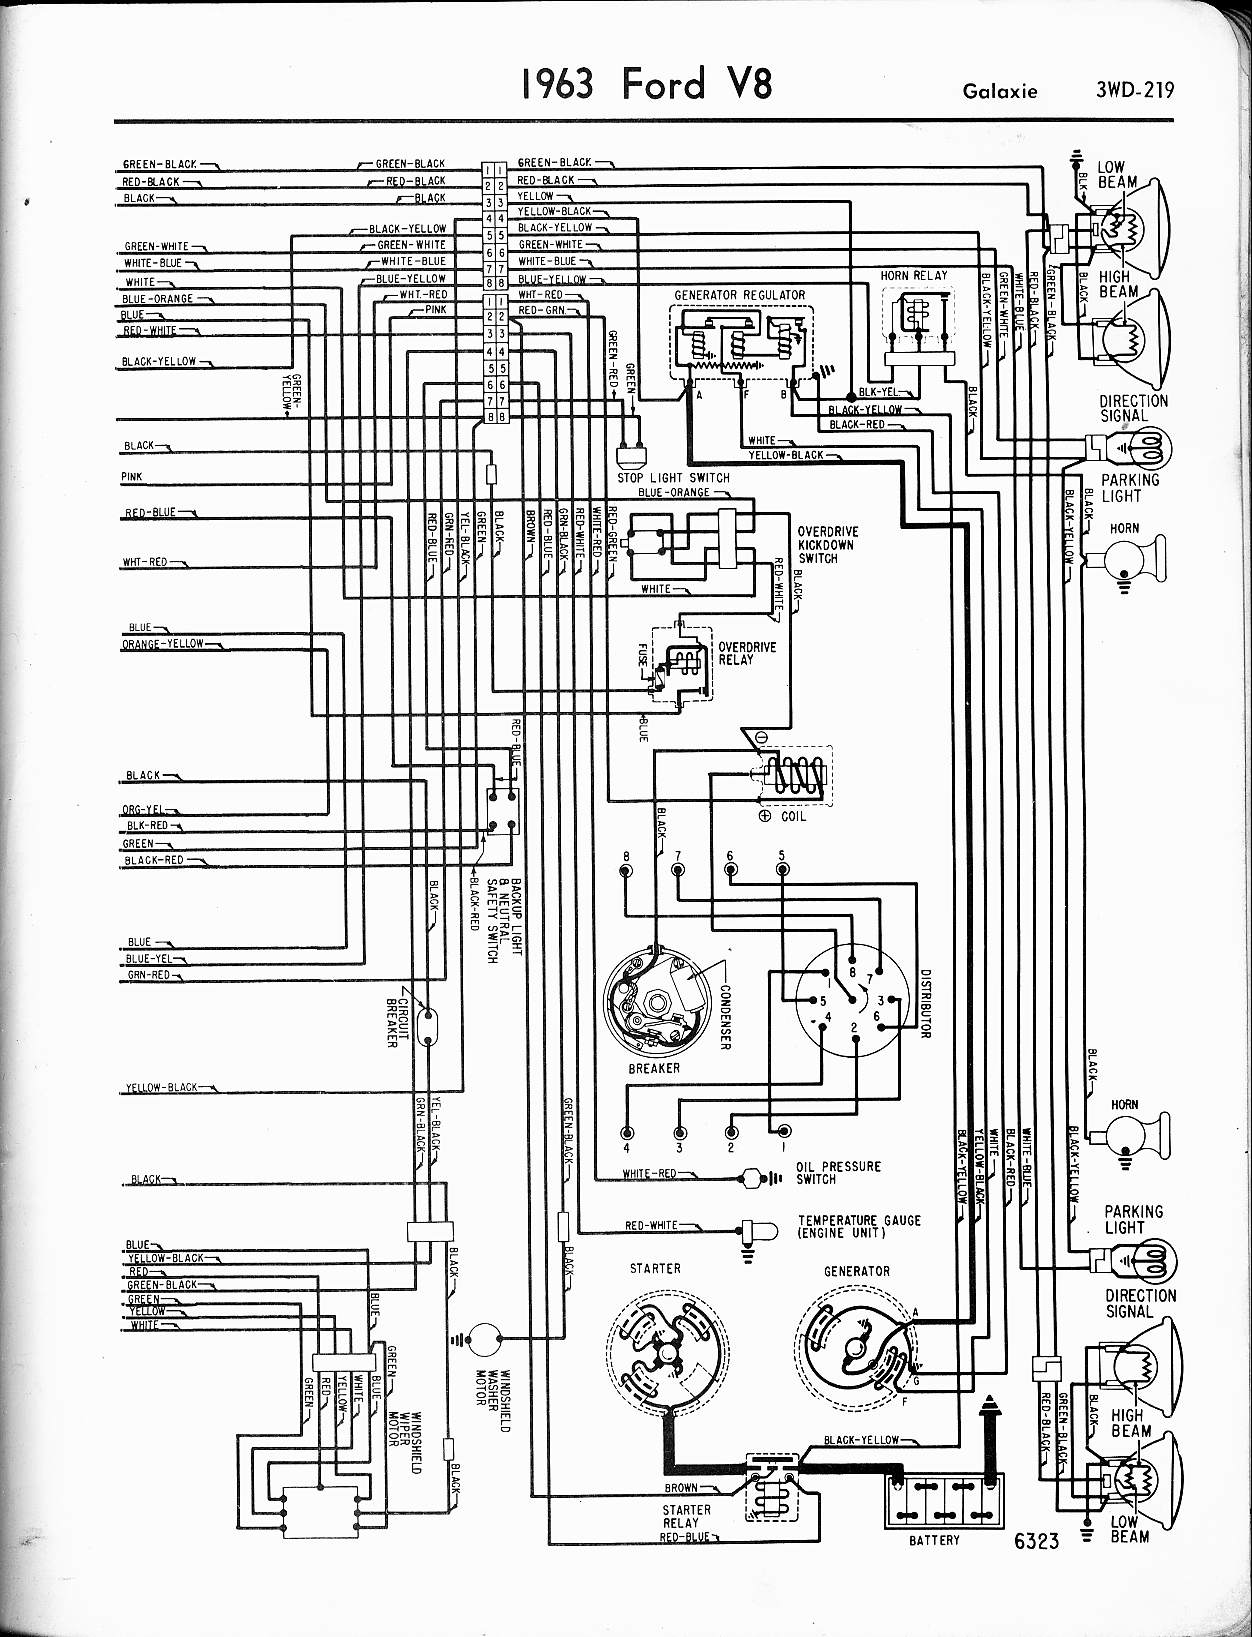 tbtrans   1cdfd1c0 further Fordindex additionally 1965 Ford Truck Electrical Wiring together with Schematics b additionally RepairGuideContent. on 1959 ford f100 wiring diagram